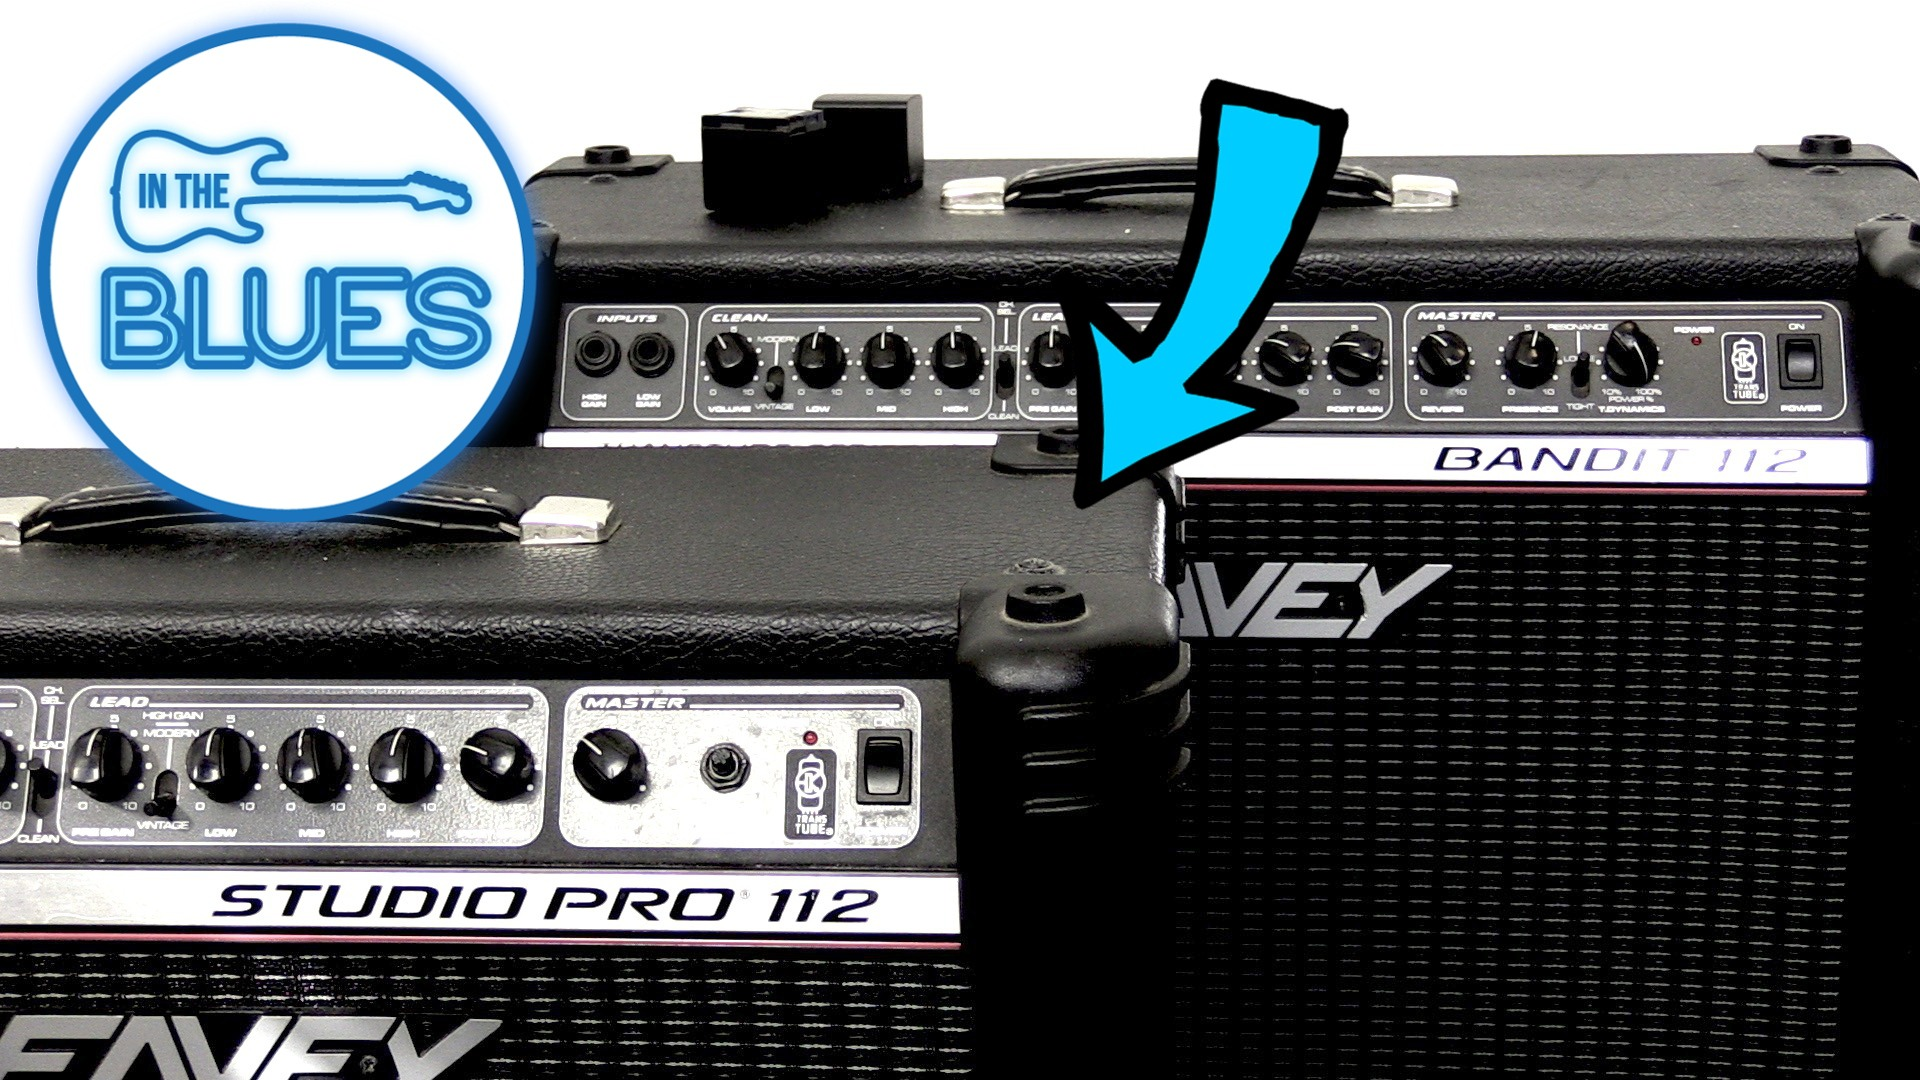 Peavey Bandit 112 vs Peavey Studio Pro 112 (red stripe)